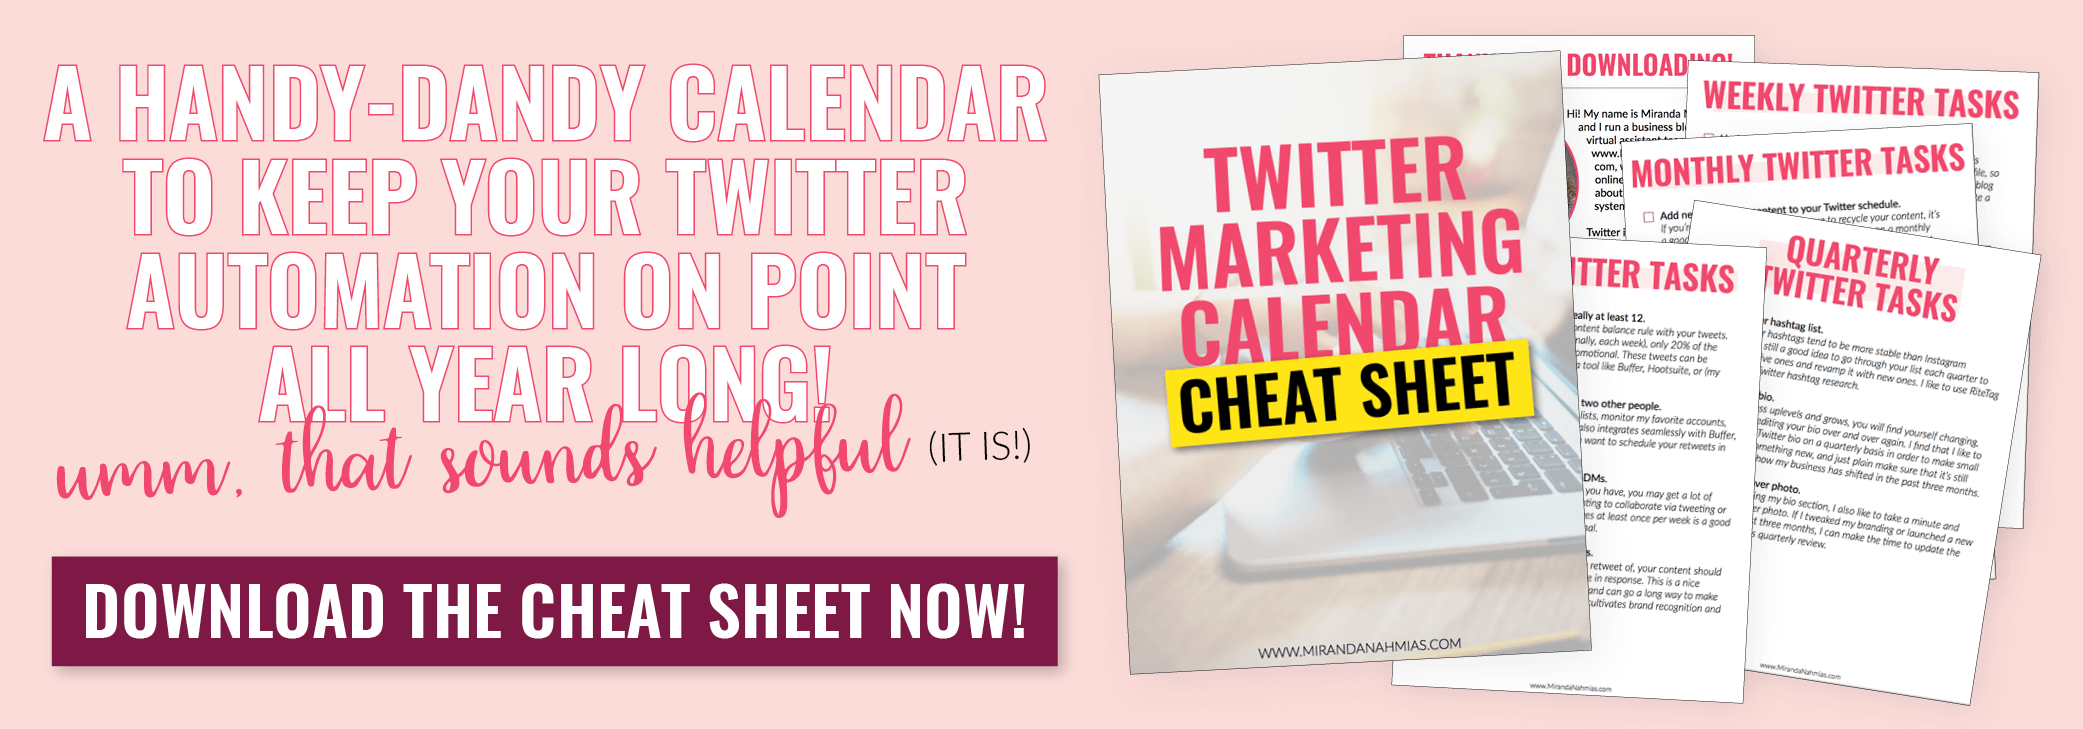 automating-your-twitter-marketing-calendar-cheat-sheet